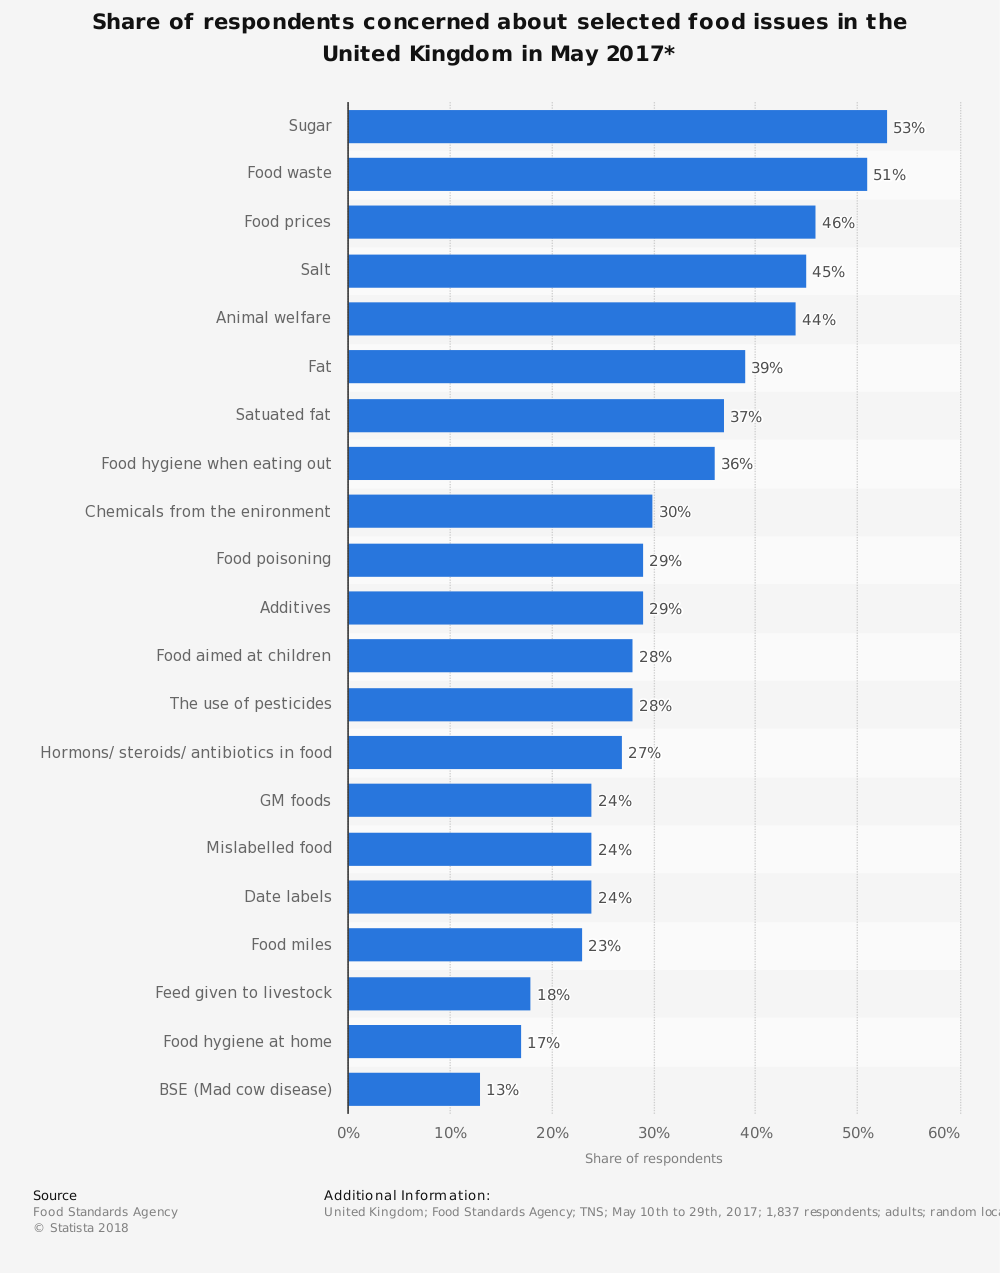 Statistic: Share of respondents concerned about selected food issues in the United Kingdom in May 2017* | Statista